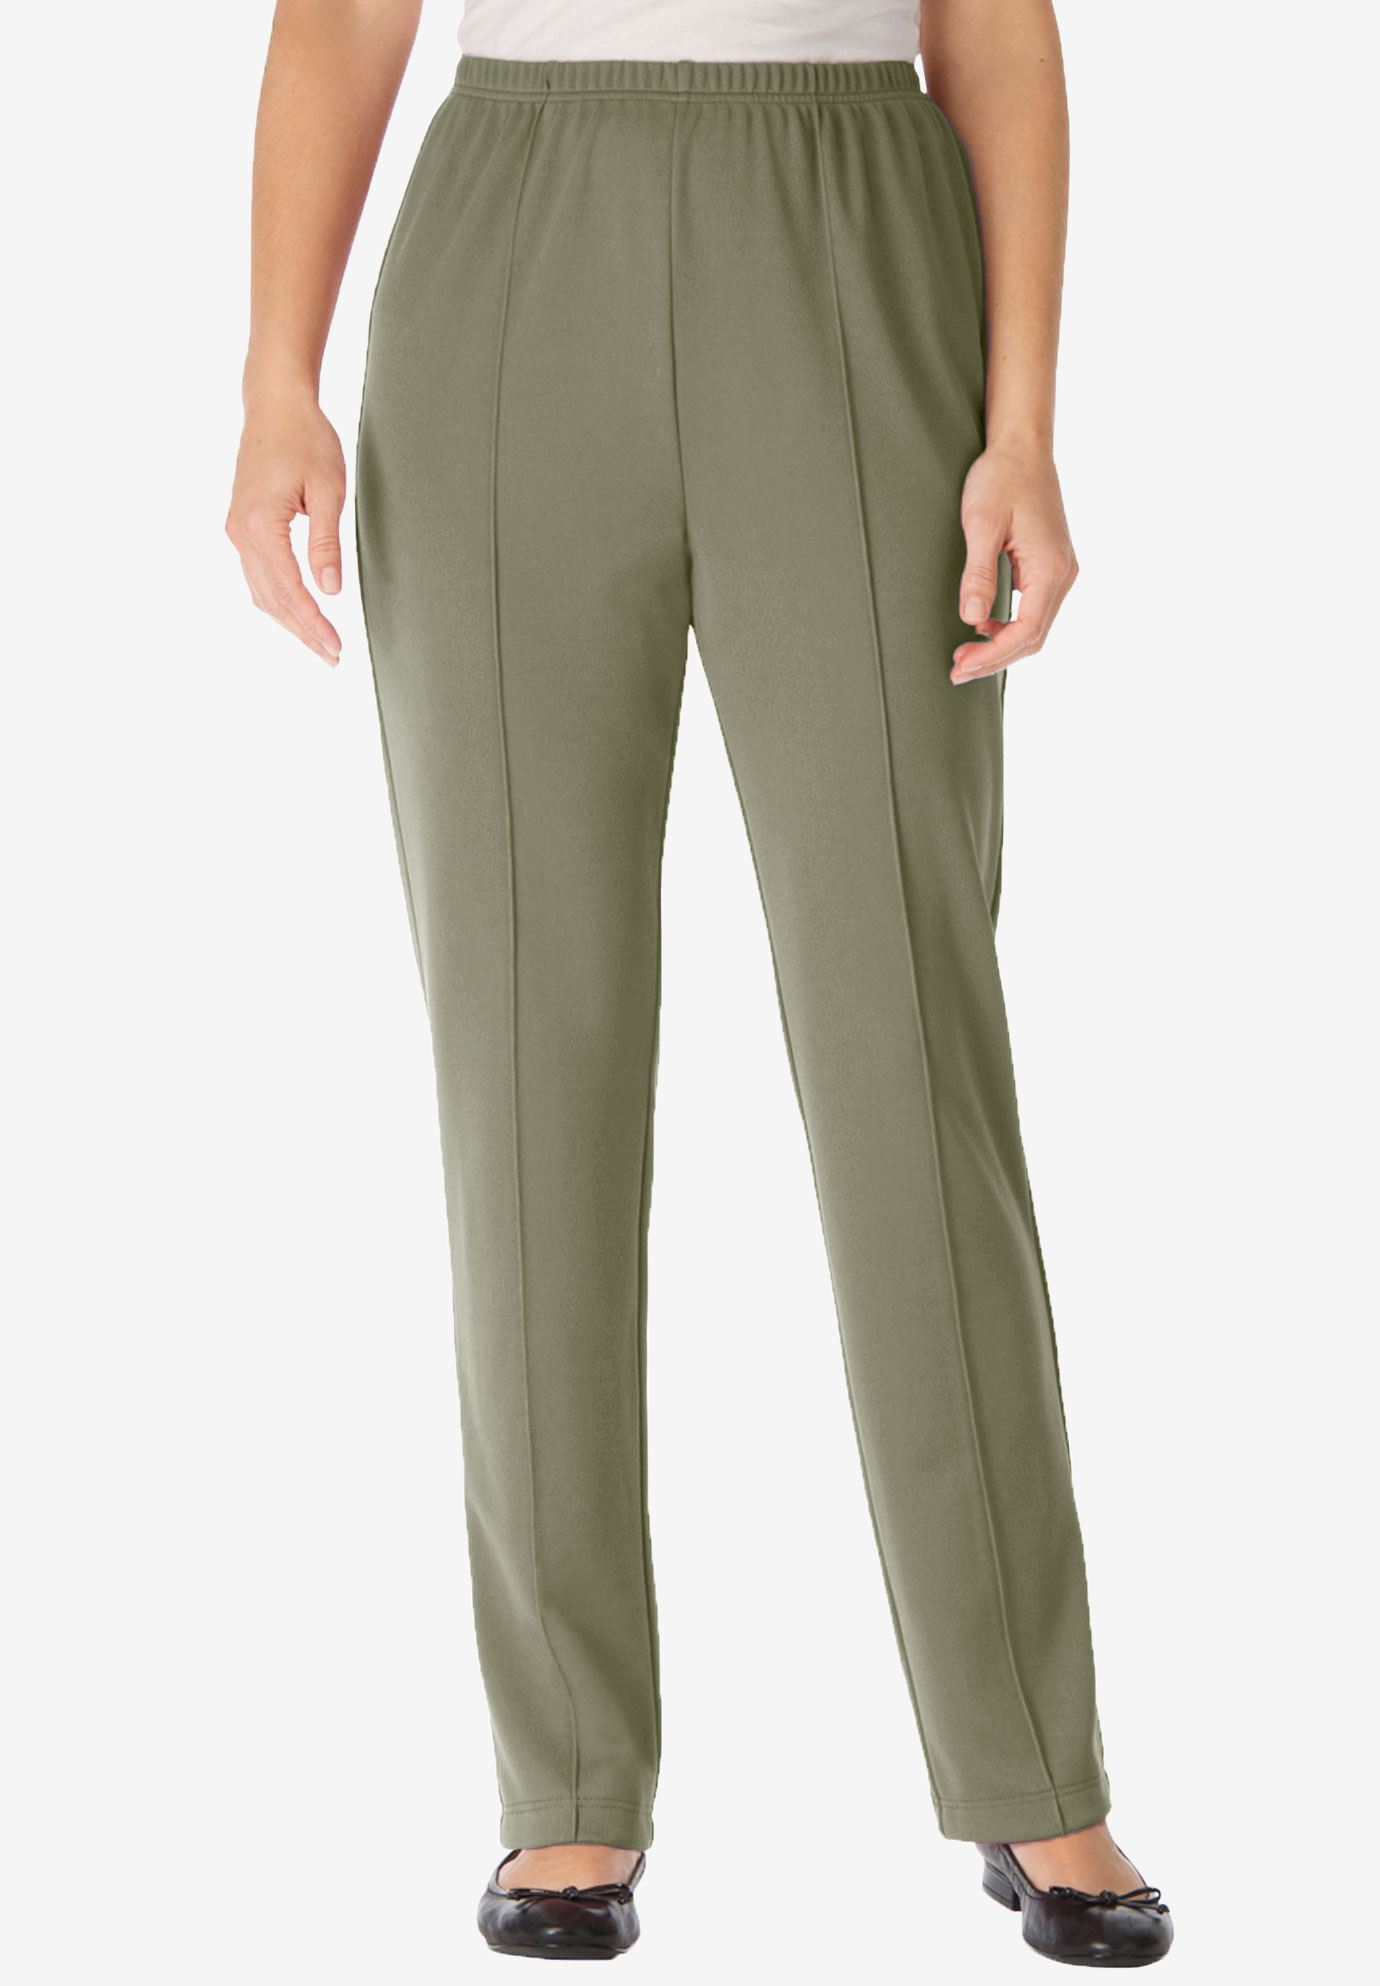 Pants for Women On Sale, Black, polyester, 2017, 26 Chloé